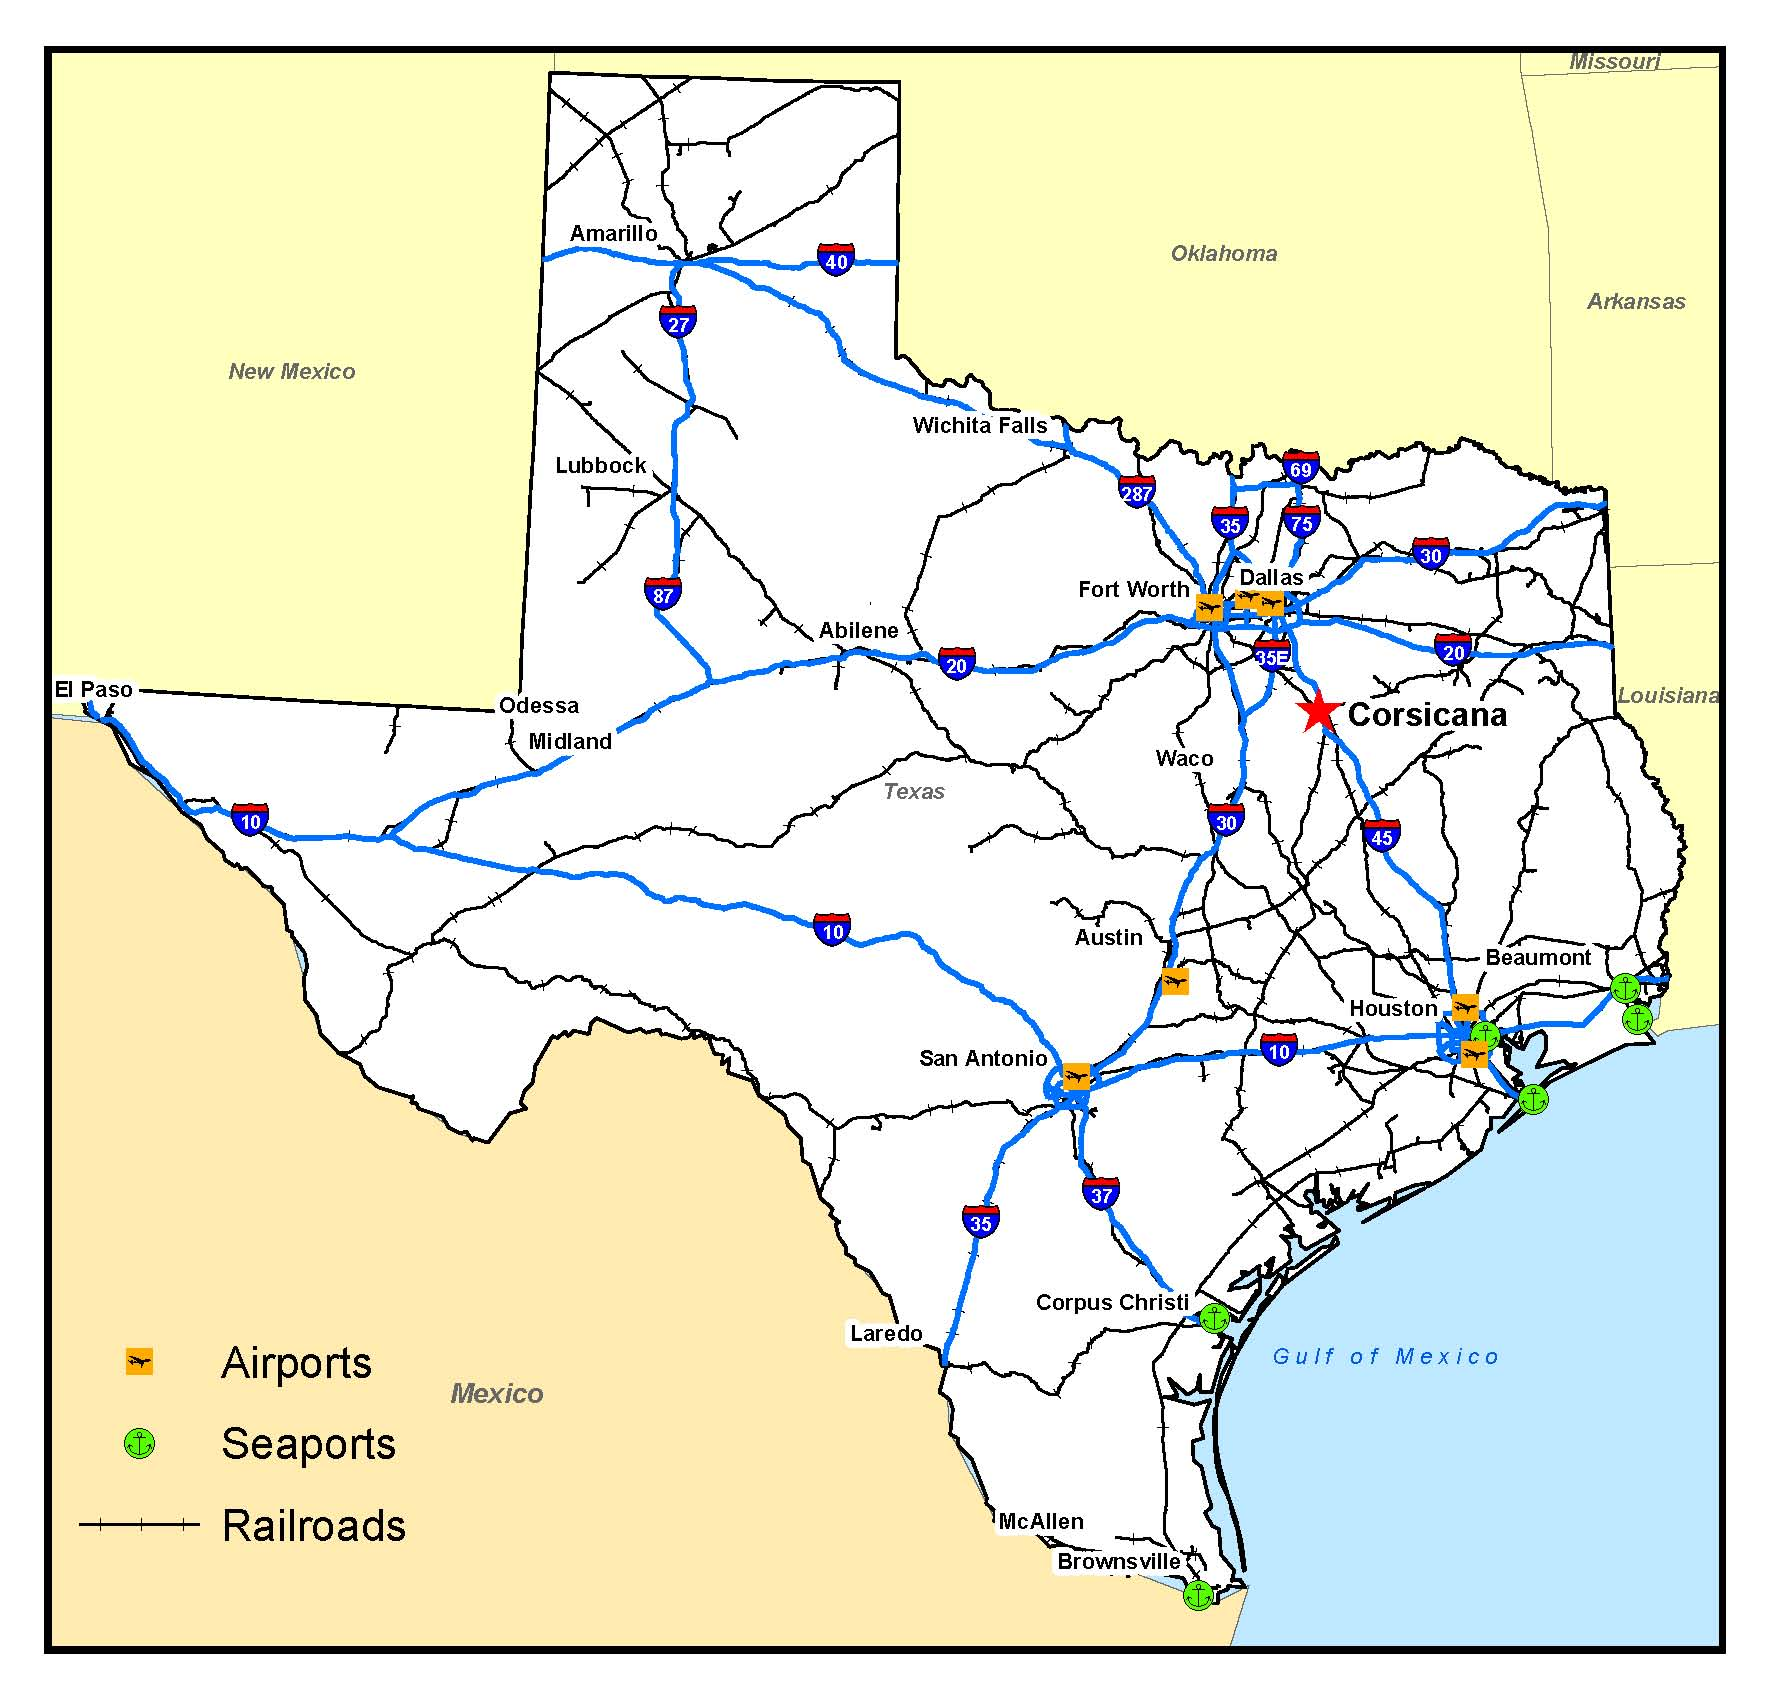 Texas Transportation Network.jpg